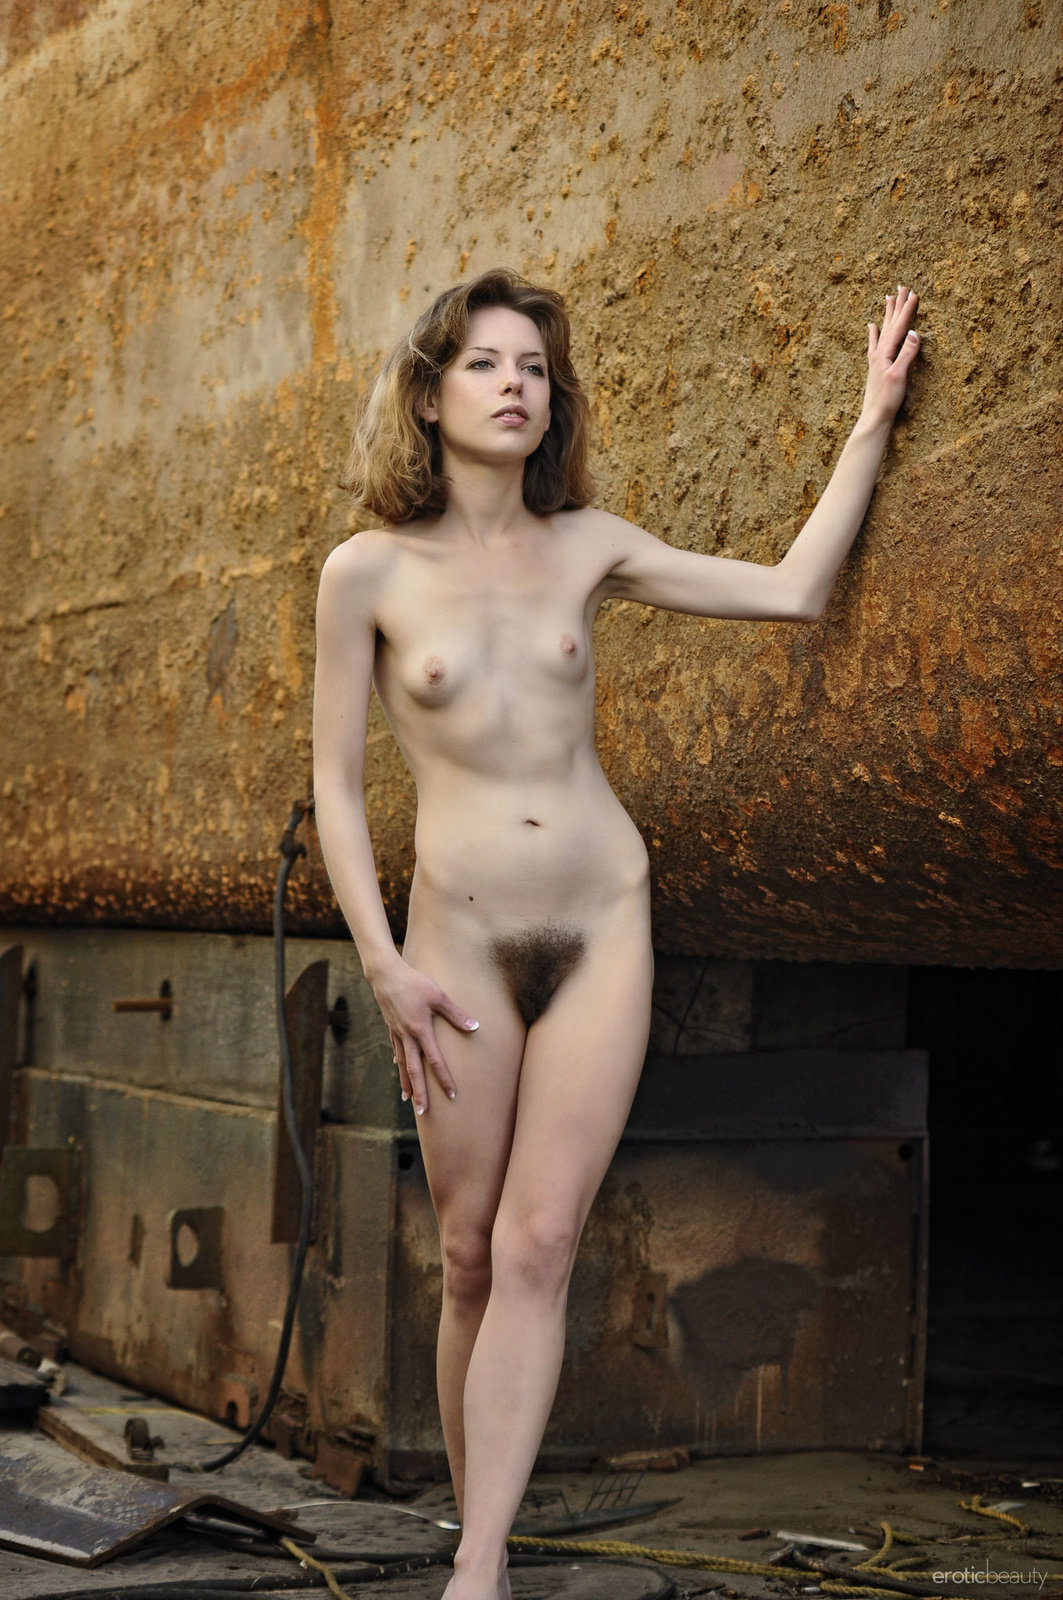 Emily Windsor In The Rock By Erotic Beauty 16 Photos -6473